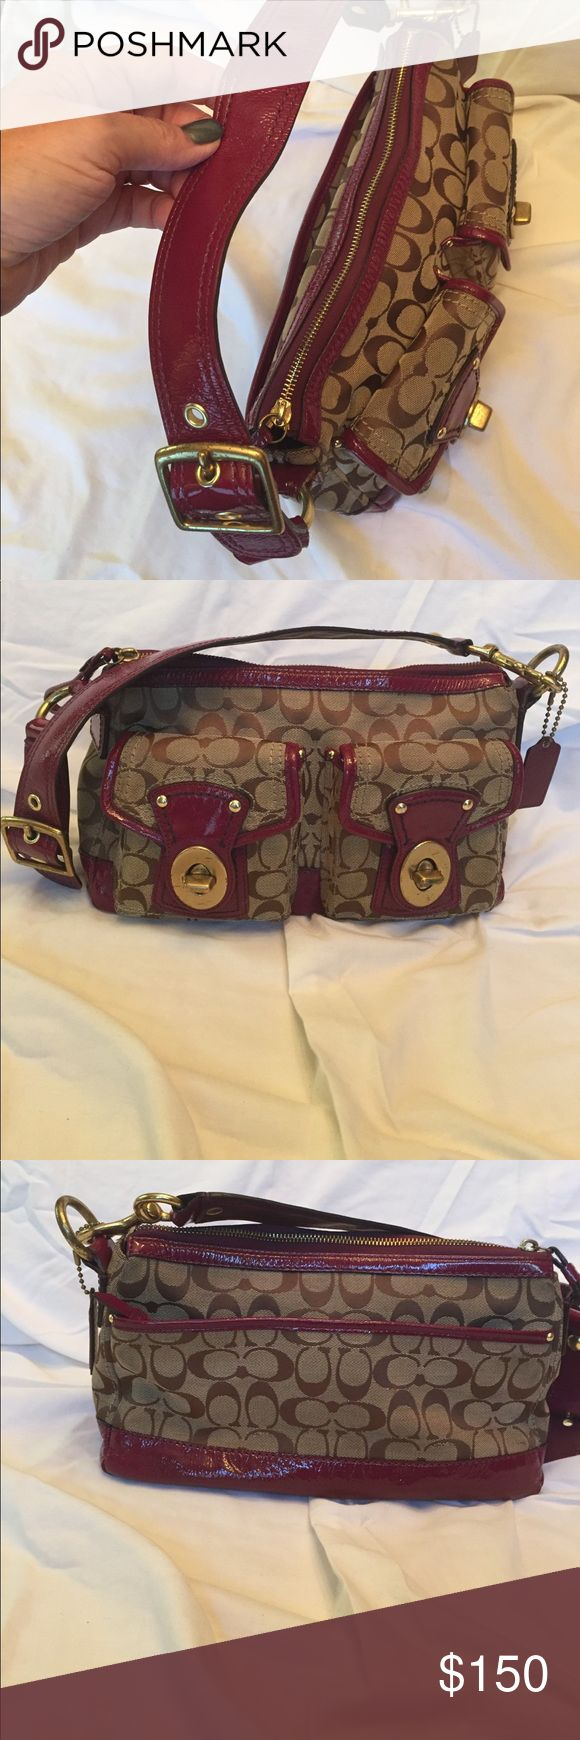 Coach Legacy in signature jacquard and berry Beautiful coach legacy handbag in signature jacquard and Barry paten leather trim and strap. The bag is like new very gently used no stains rips or tears or signs of wear on the bottom corners. Gold toned hardware with one hanging coach tag. One area in leather shows some wear, but structurally fine. Overall this is really a great person and a great buy!😄 Coach Bags Shoulder Bags